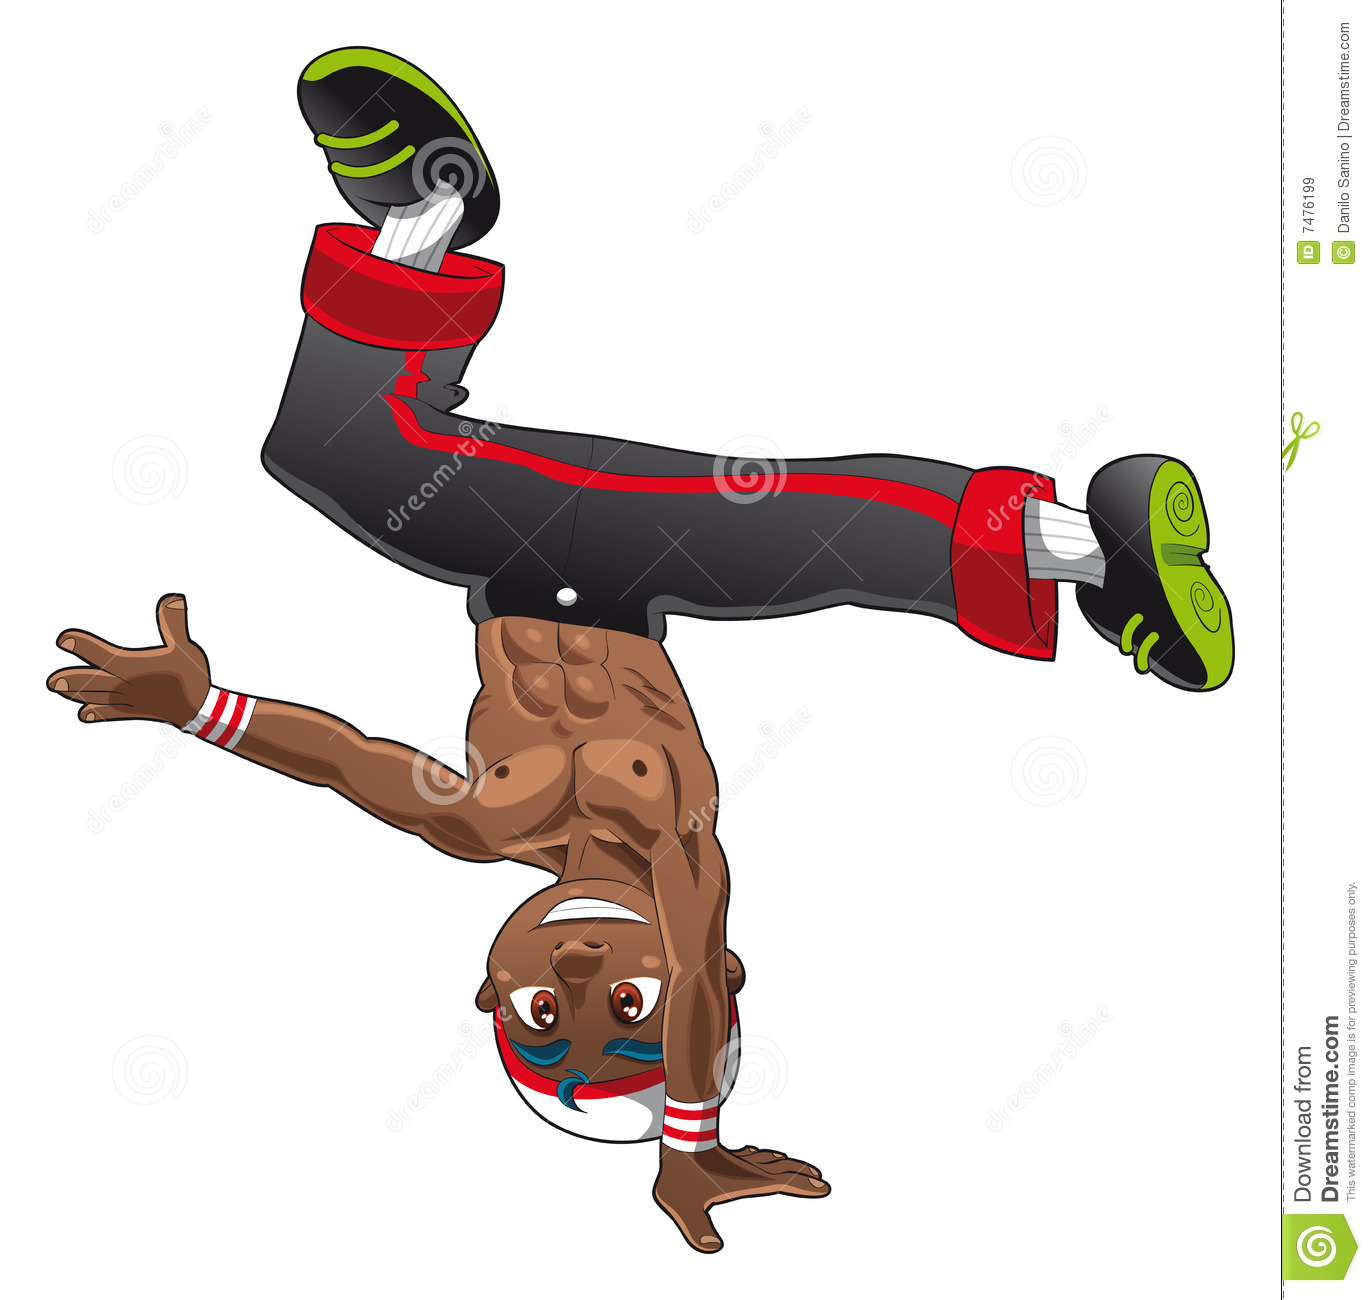 BreakDance Royalty Free Stock Images - Image: 7476199